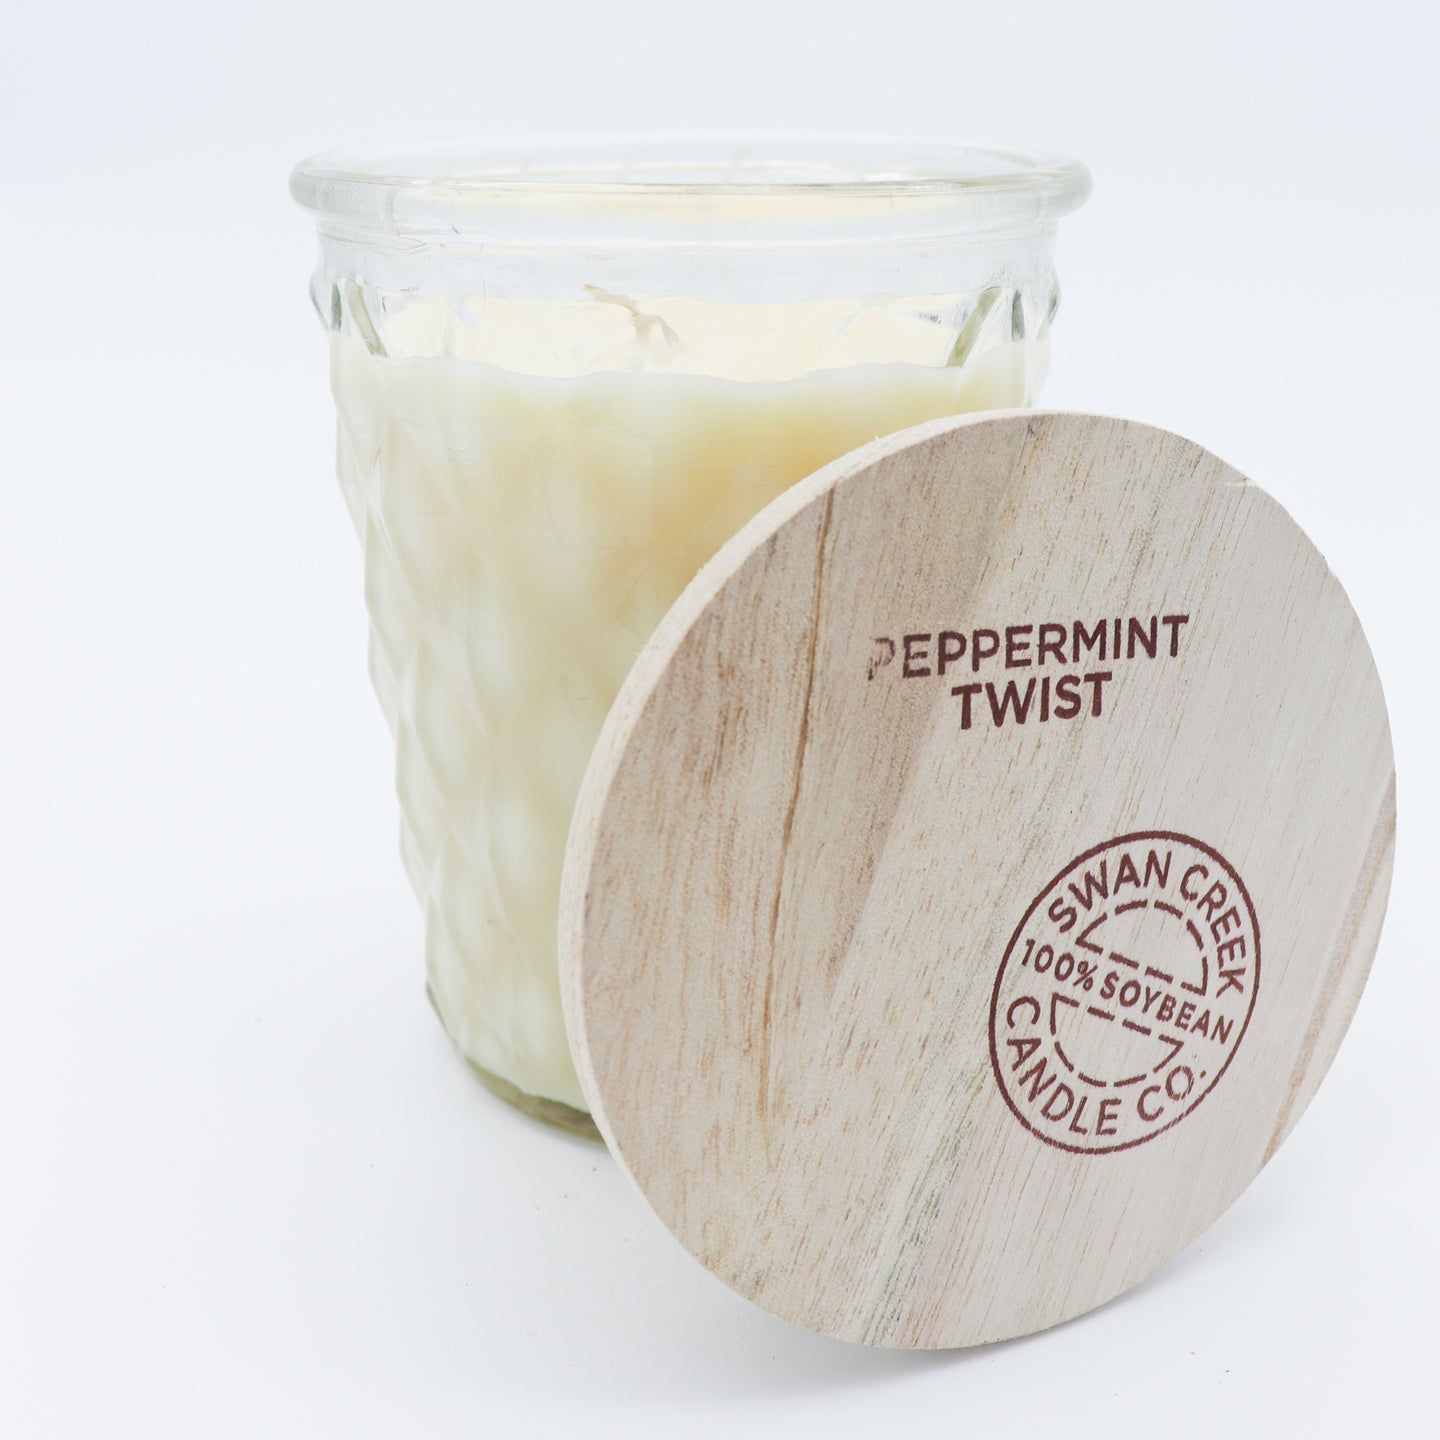 Swan Creek Candle: Peppermint Twist (Multiple Sizes)- Holiday Candle